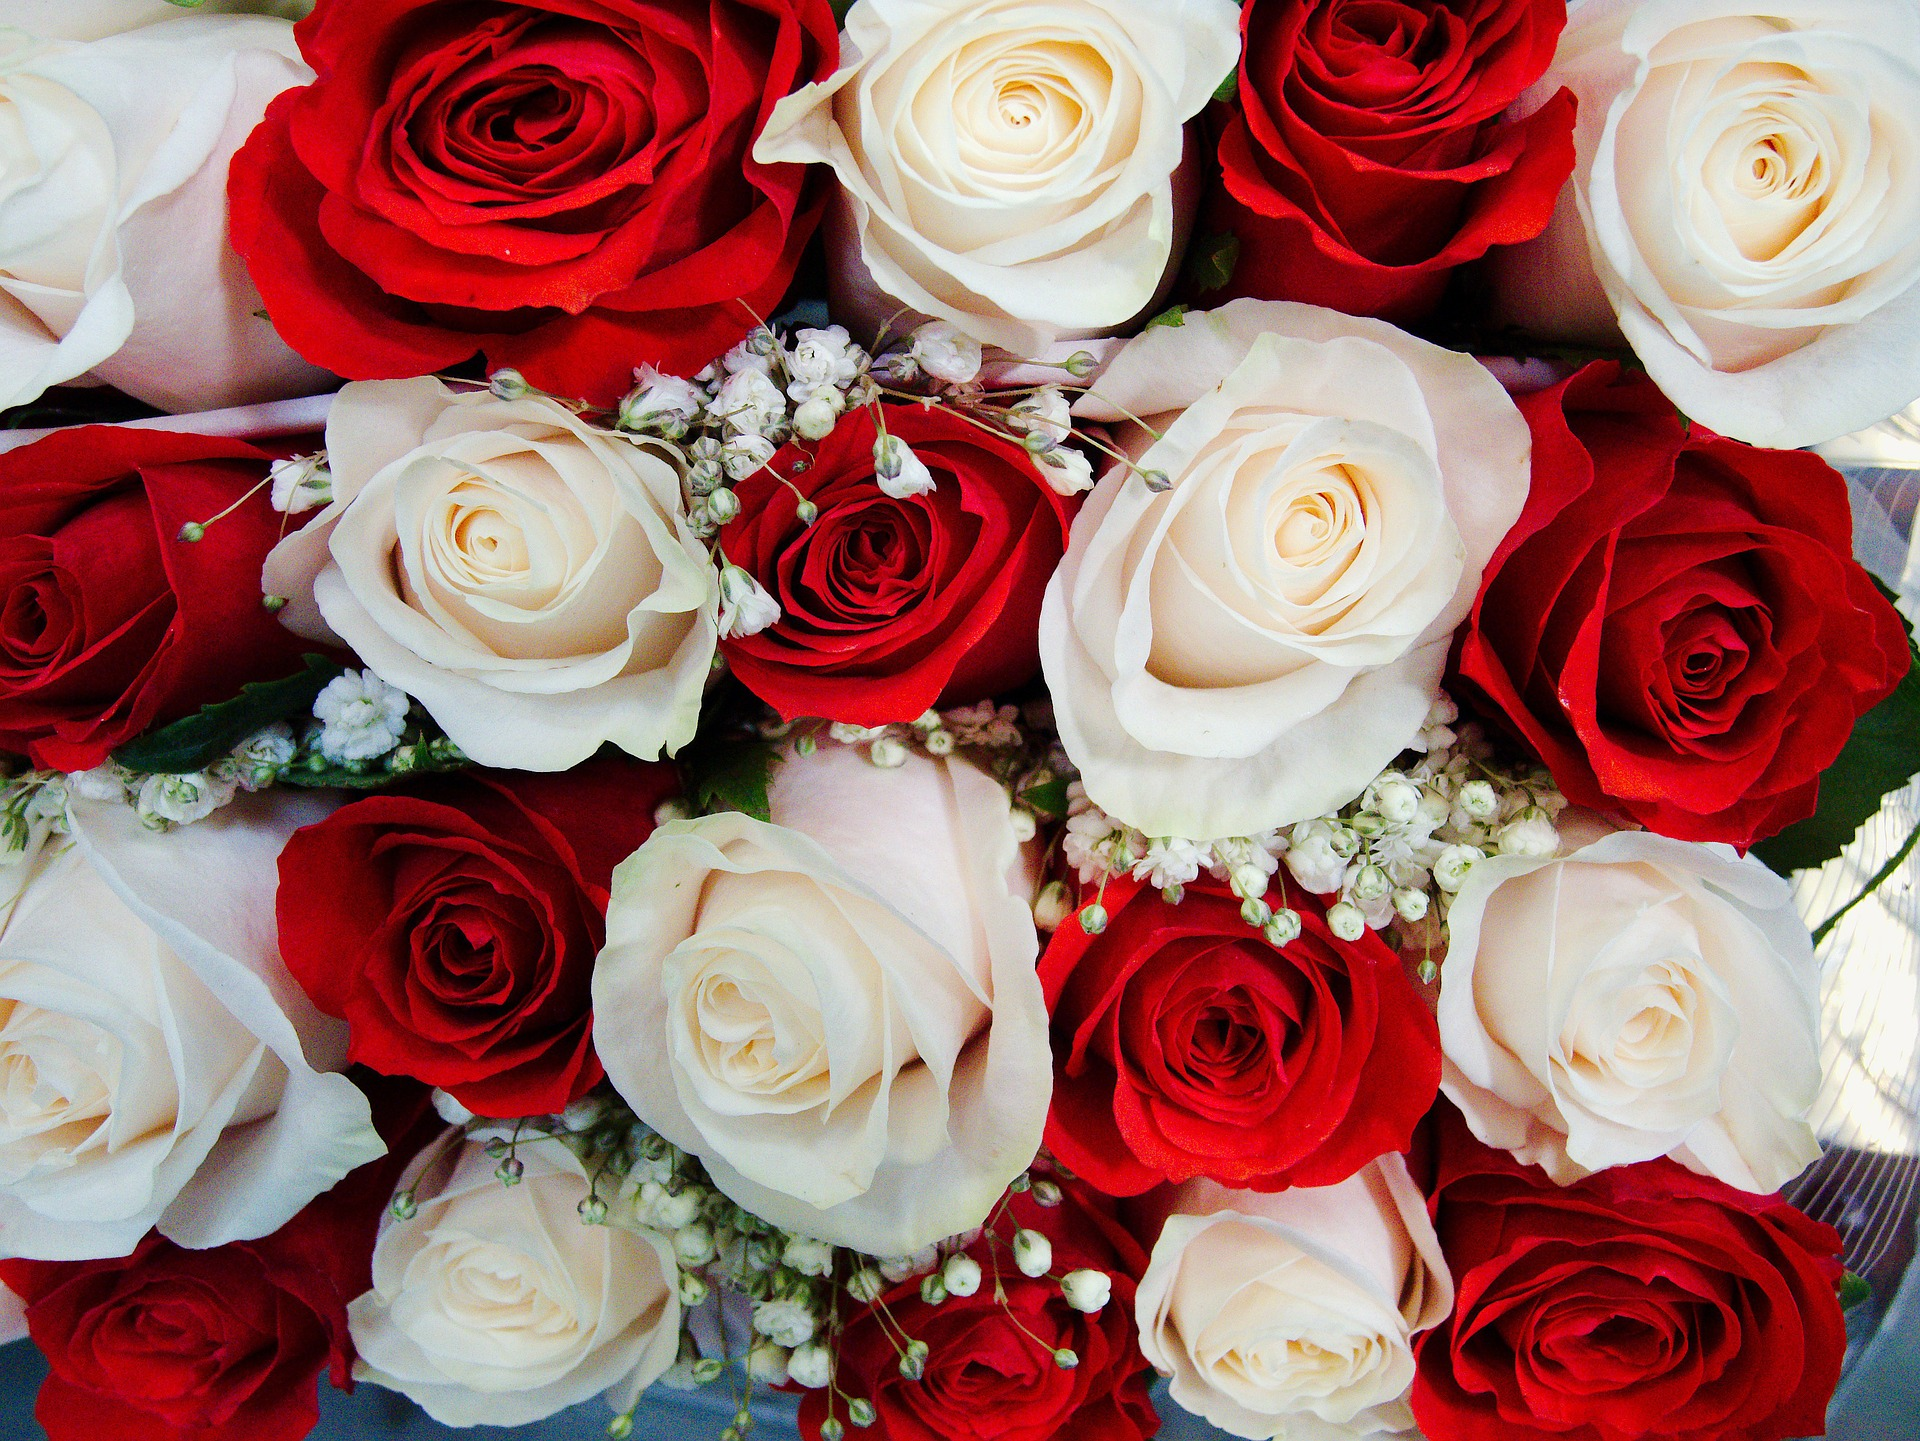 13 beautiful wedding flowers their meanings north west brides whilst the red rose may be clich its become this way for a reason it resembles true love which is a brilliant message to send your significant other on izmirmasajfo